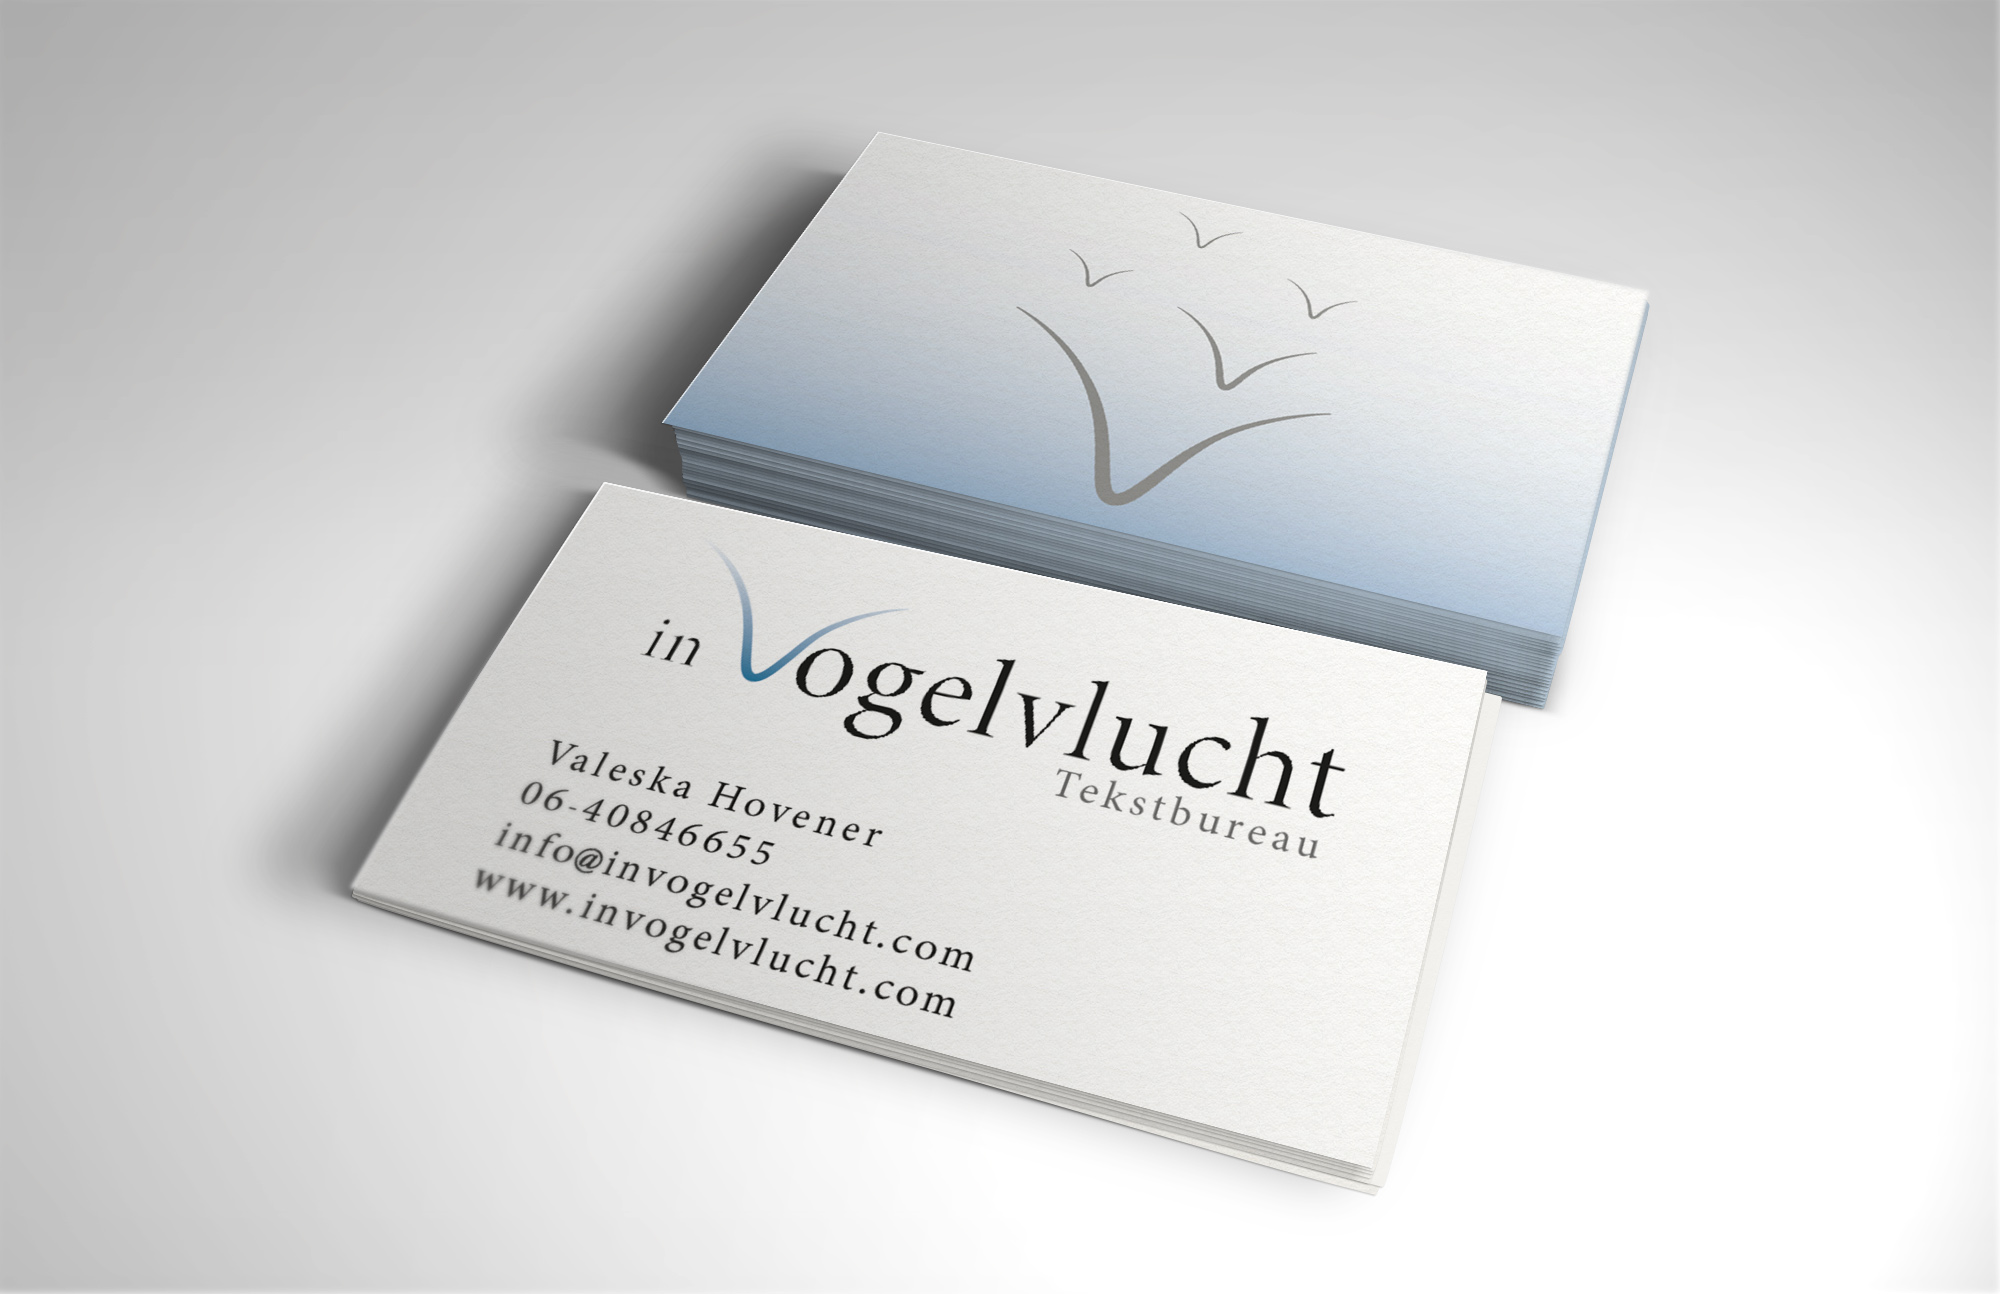 Graphic-Business-Card-InVogelvlucht